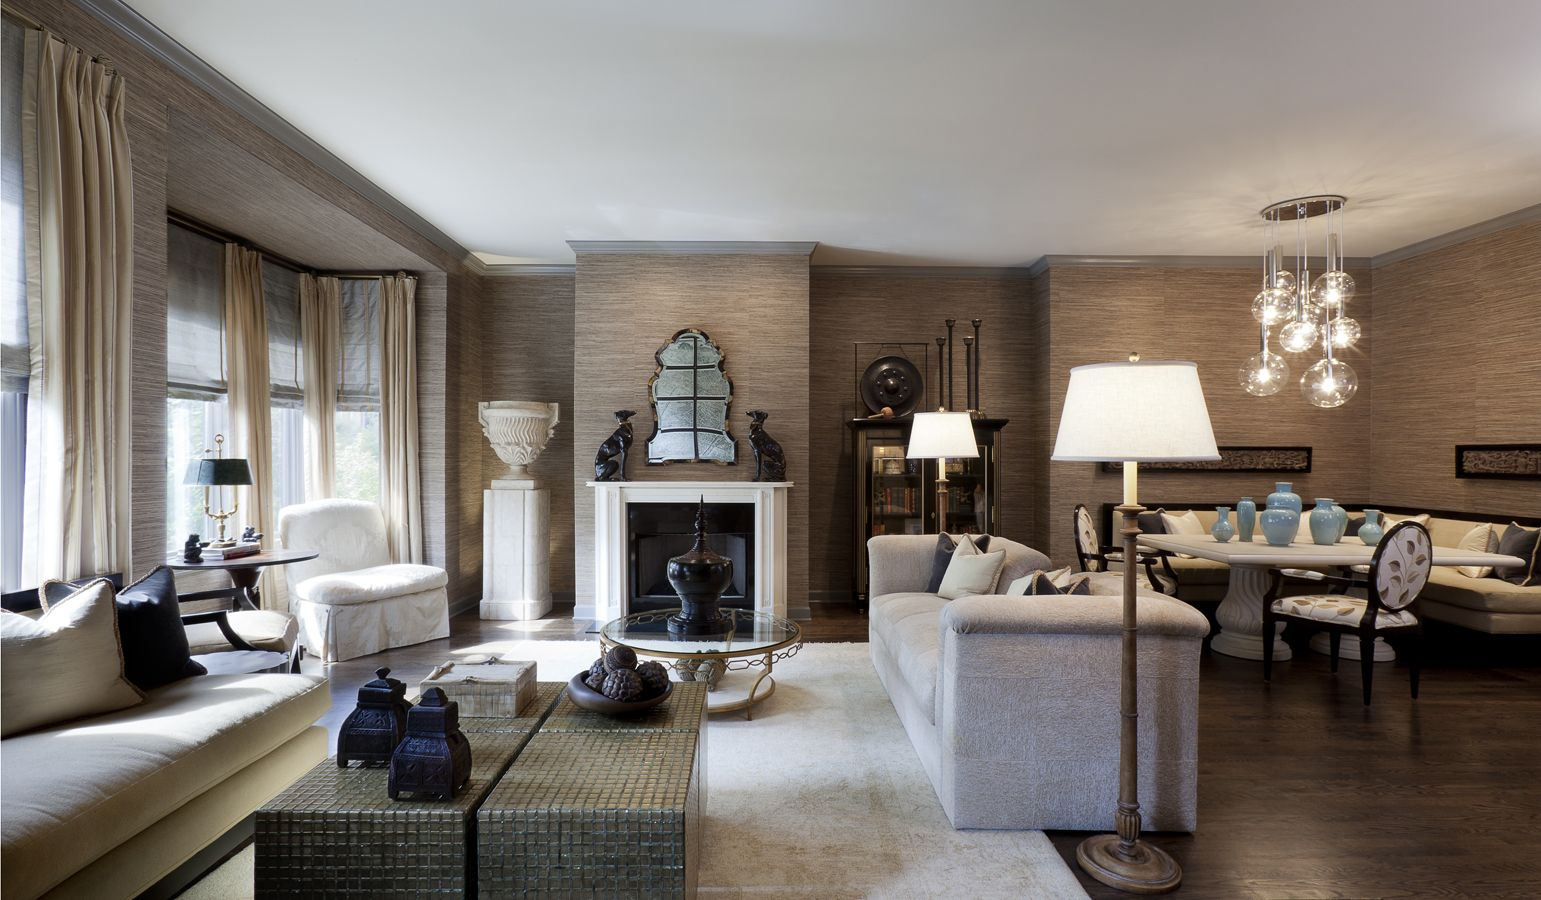 Chicago Interior Designers Chicago Interior Design Firm Interior